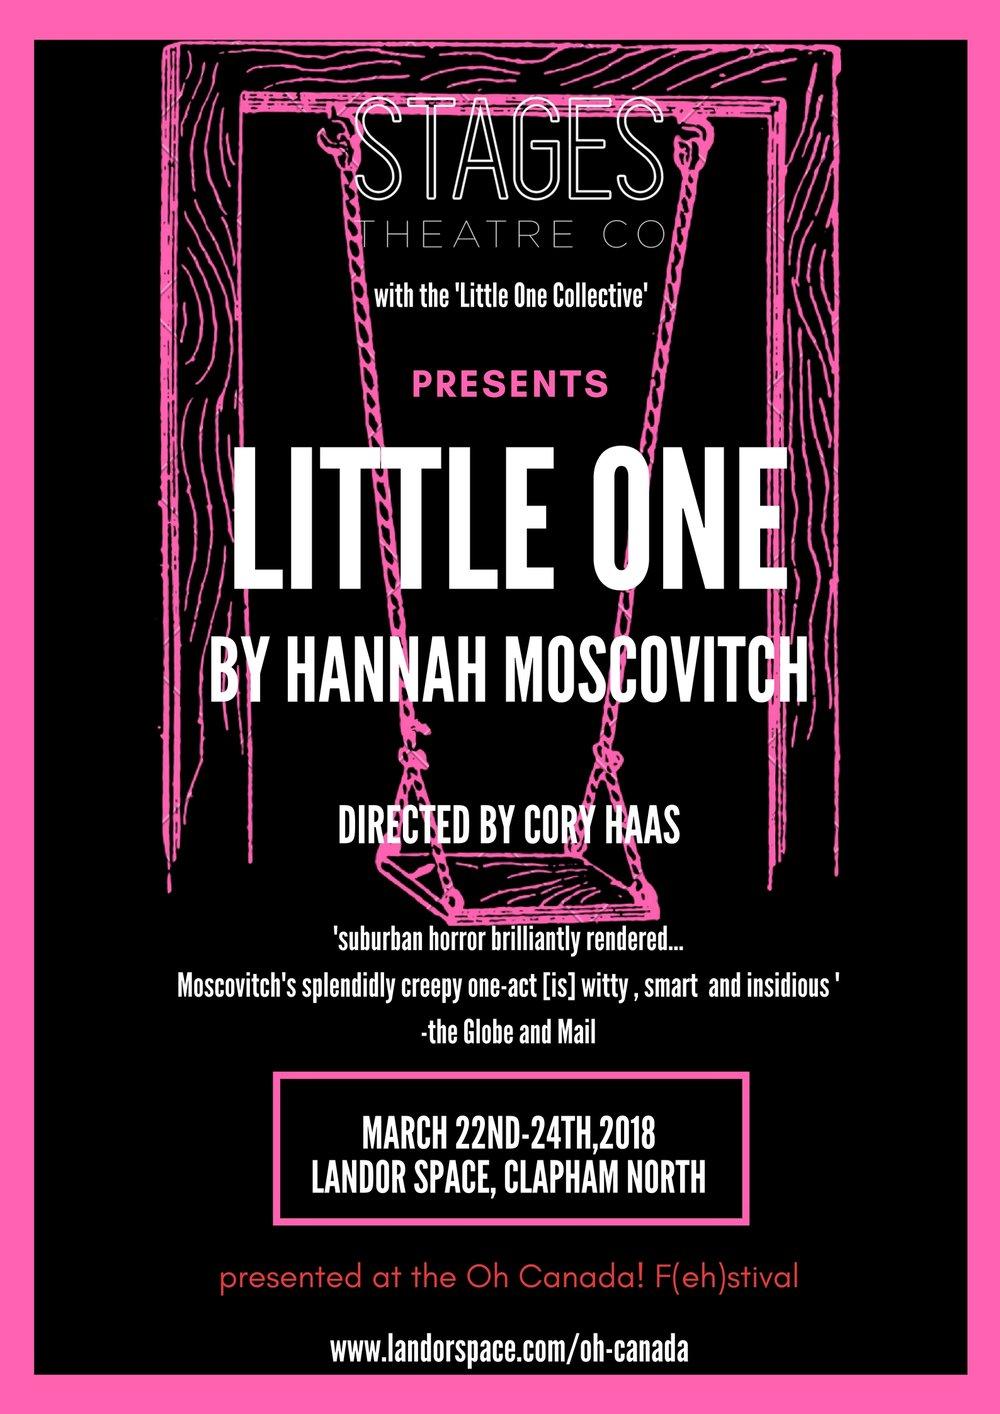 LITTLE ONE - Written by Hannah Moscovitch and directed by Cory Haas – Thursday March 22nd - Saturday March 24th 2018 @ 7pmStandard £16 - Concessions £14The F(eh)stival concludes with our main event, a three-night run of Little One. A chilling psychological thriller, Little One is the haunting story of adopted siblings Aaron and Claire – one the definition of normal, the other deeply disturbed and unpredictable – and the strange lives of their neighbours, a man and his mail-order bride. Hannah Moscovitch is a Siminovitch Prize and Govenor General's Award nominee, her plays have received national recognition and has been called 'the wunderkind of Canadian theatre' by CBC Radio.